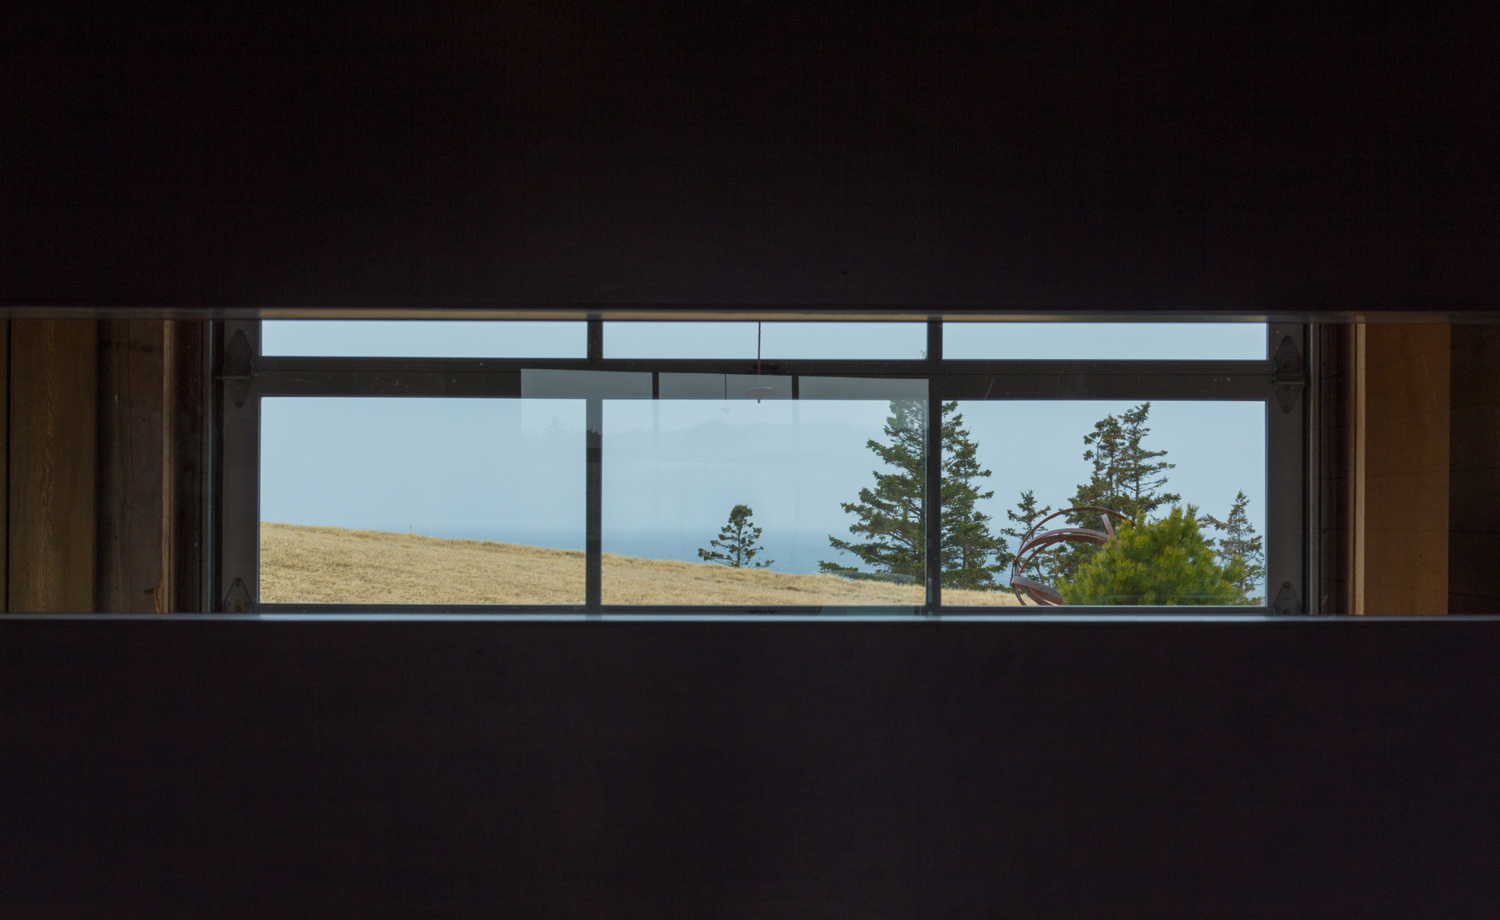 houdinidesign_ARCHITECTS_Ritchie-Gidney_Residence_Sandy-Cove_Digby_Acadian+Timber_Frame_Renovation_Modern_Window.jpg